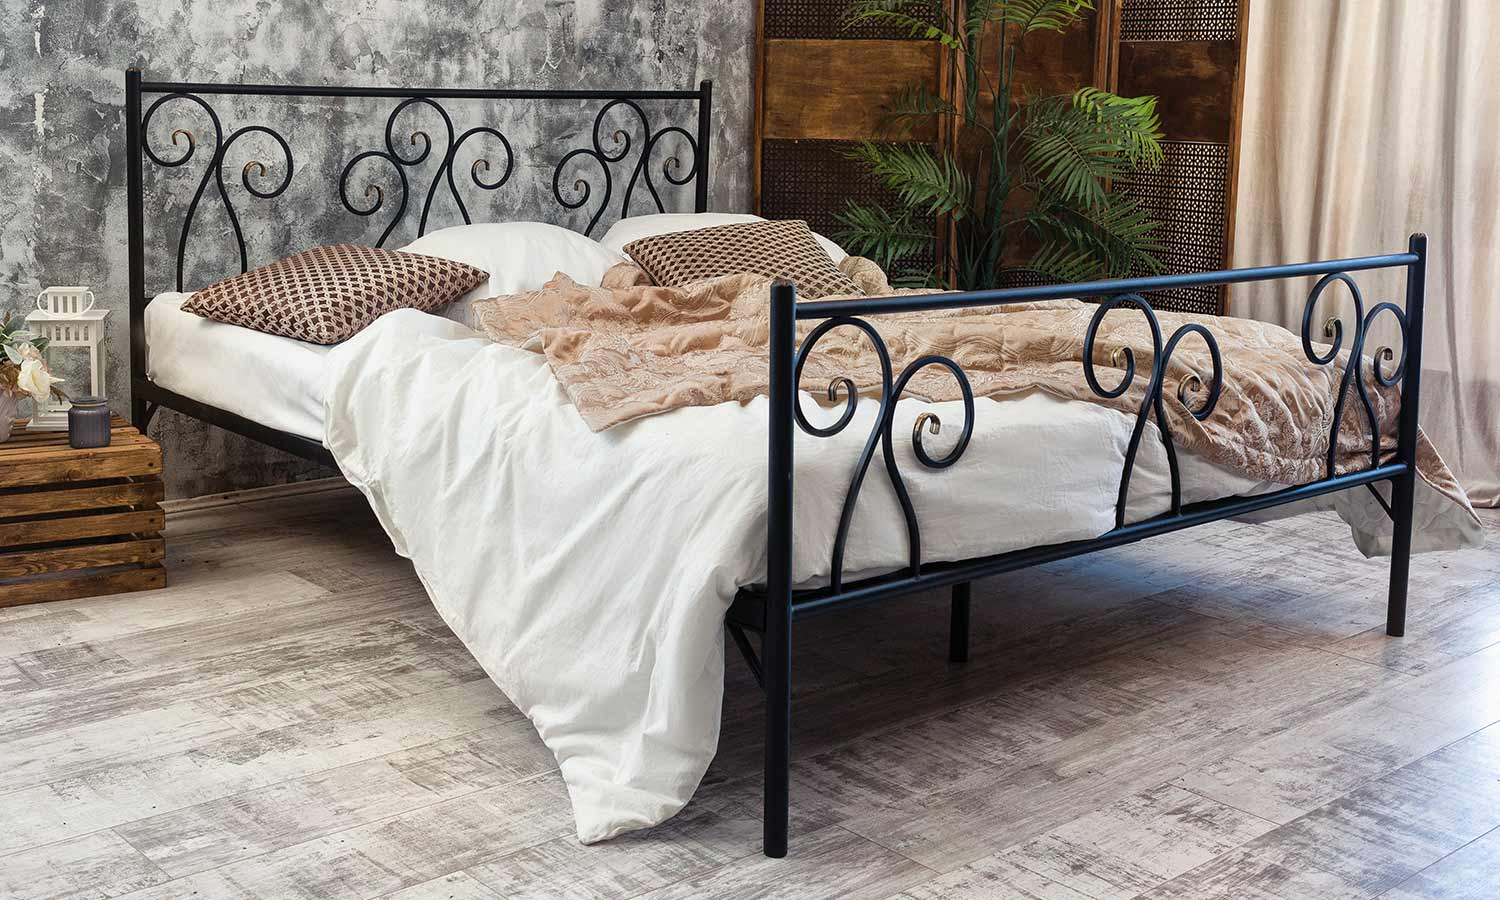 ON SALE Vintage French Country Headboard and Foot-board Country Chic Shabby Chic Solid Wood with matching wood side rails included